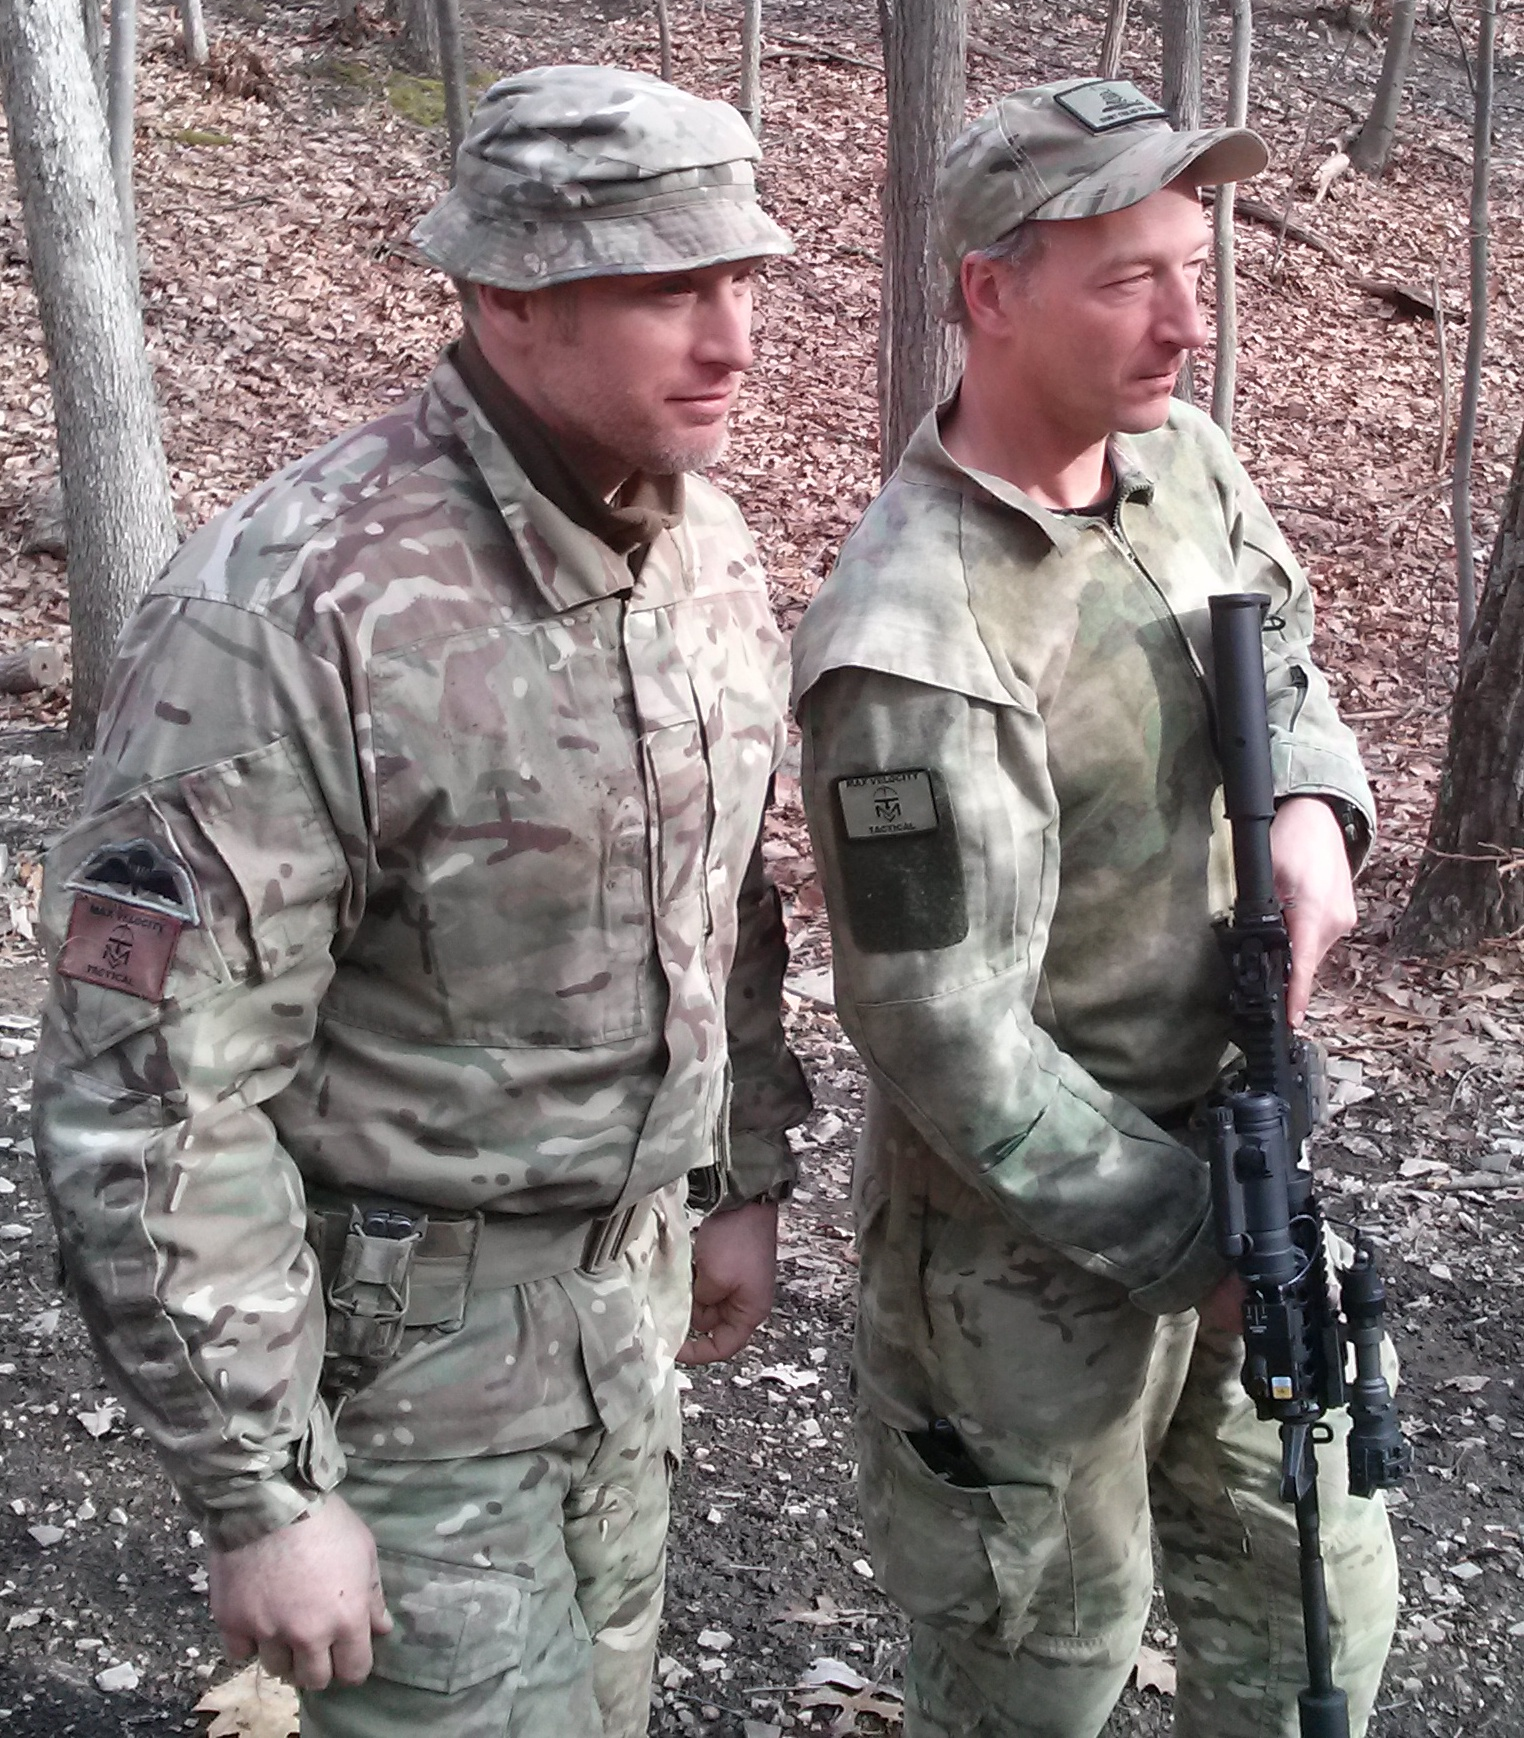 After Attending The Combined Combat Team Tactics And Patrol Cl Hunter Approached Me To Become Partners In Creating A Set Of Online Training Plans